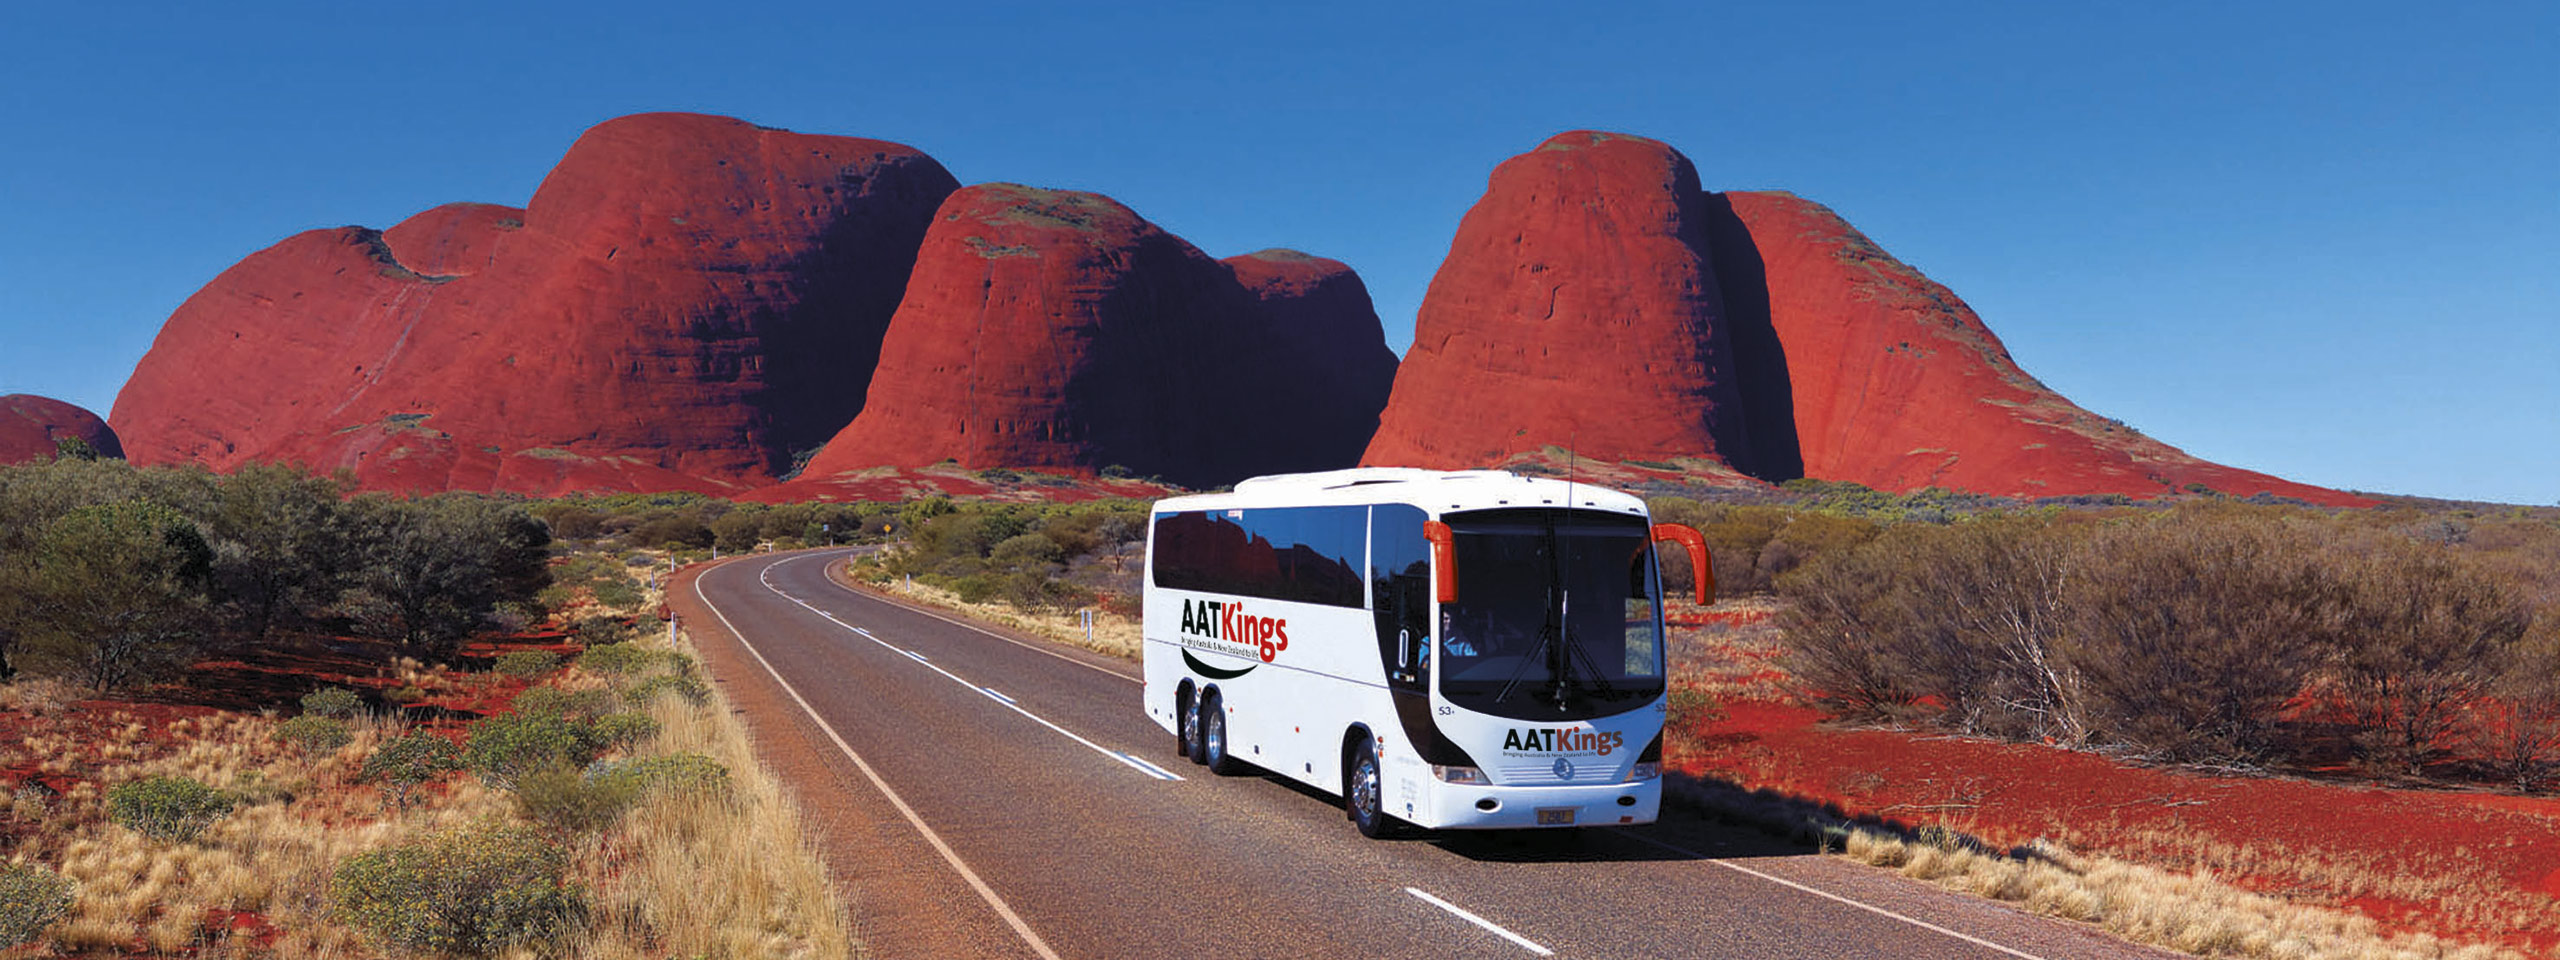 AAT Kings at Kata Tjuta